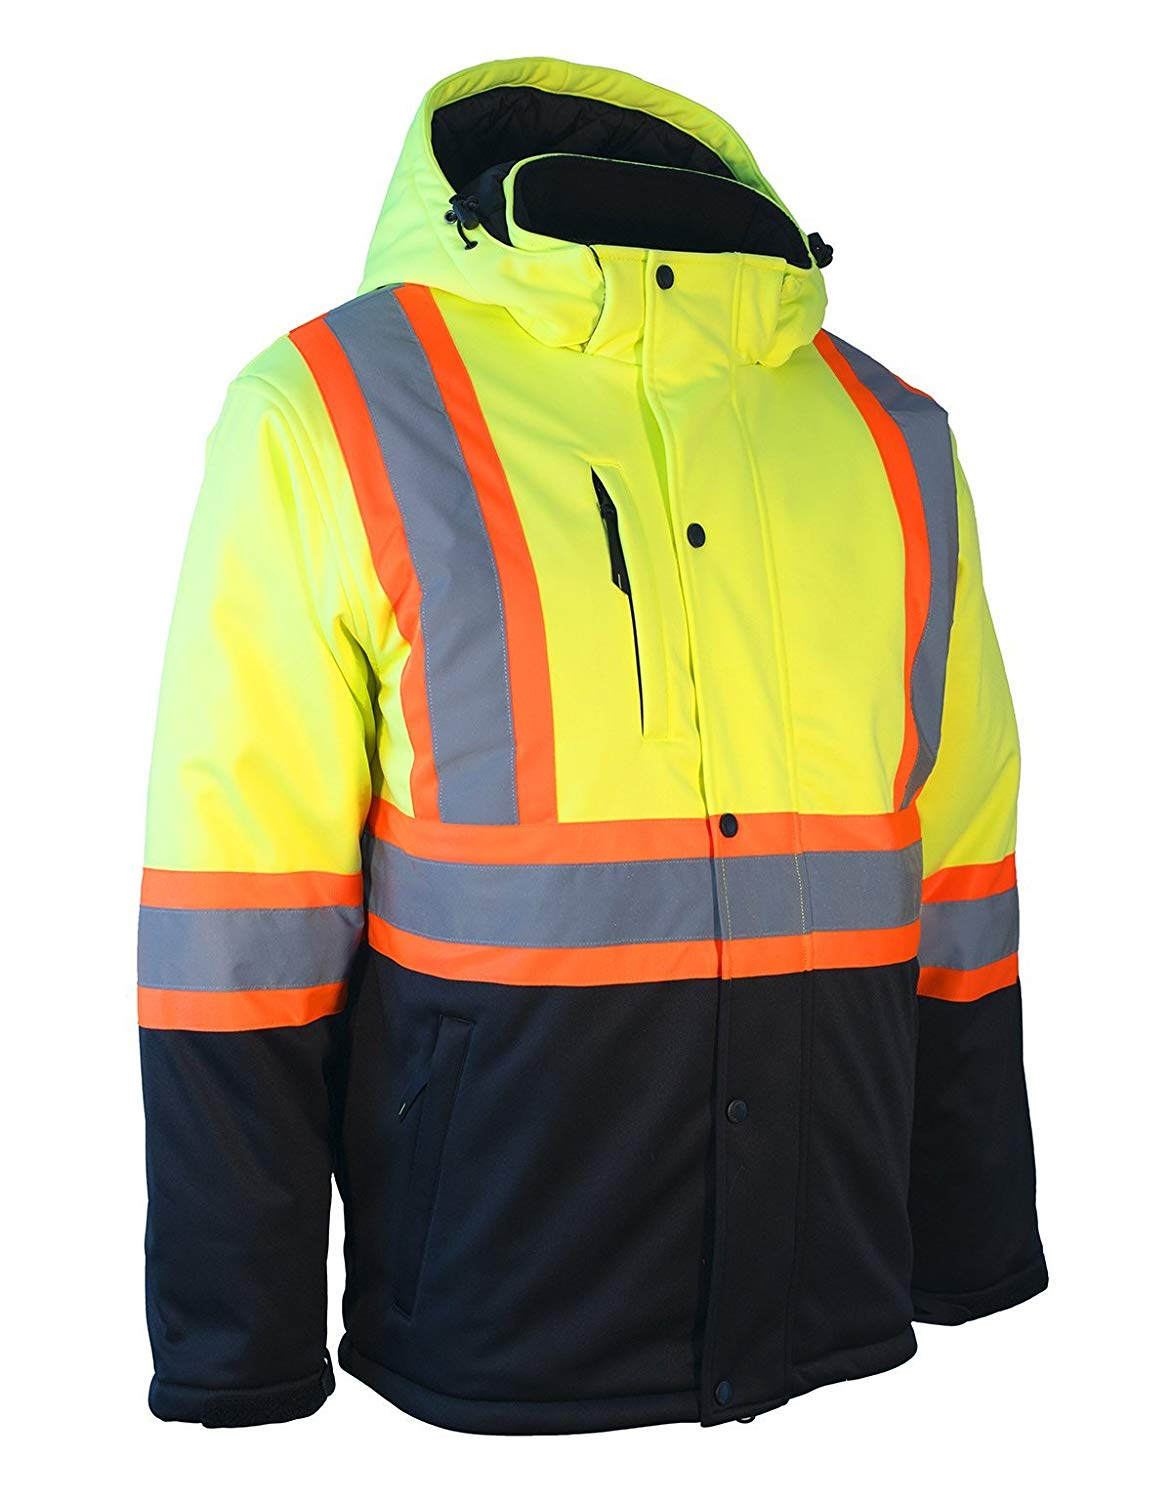 Forcefield Hi-Vis Re-Engineered Safety Softshell 023-EN149LY